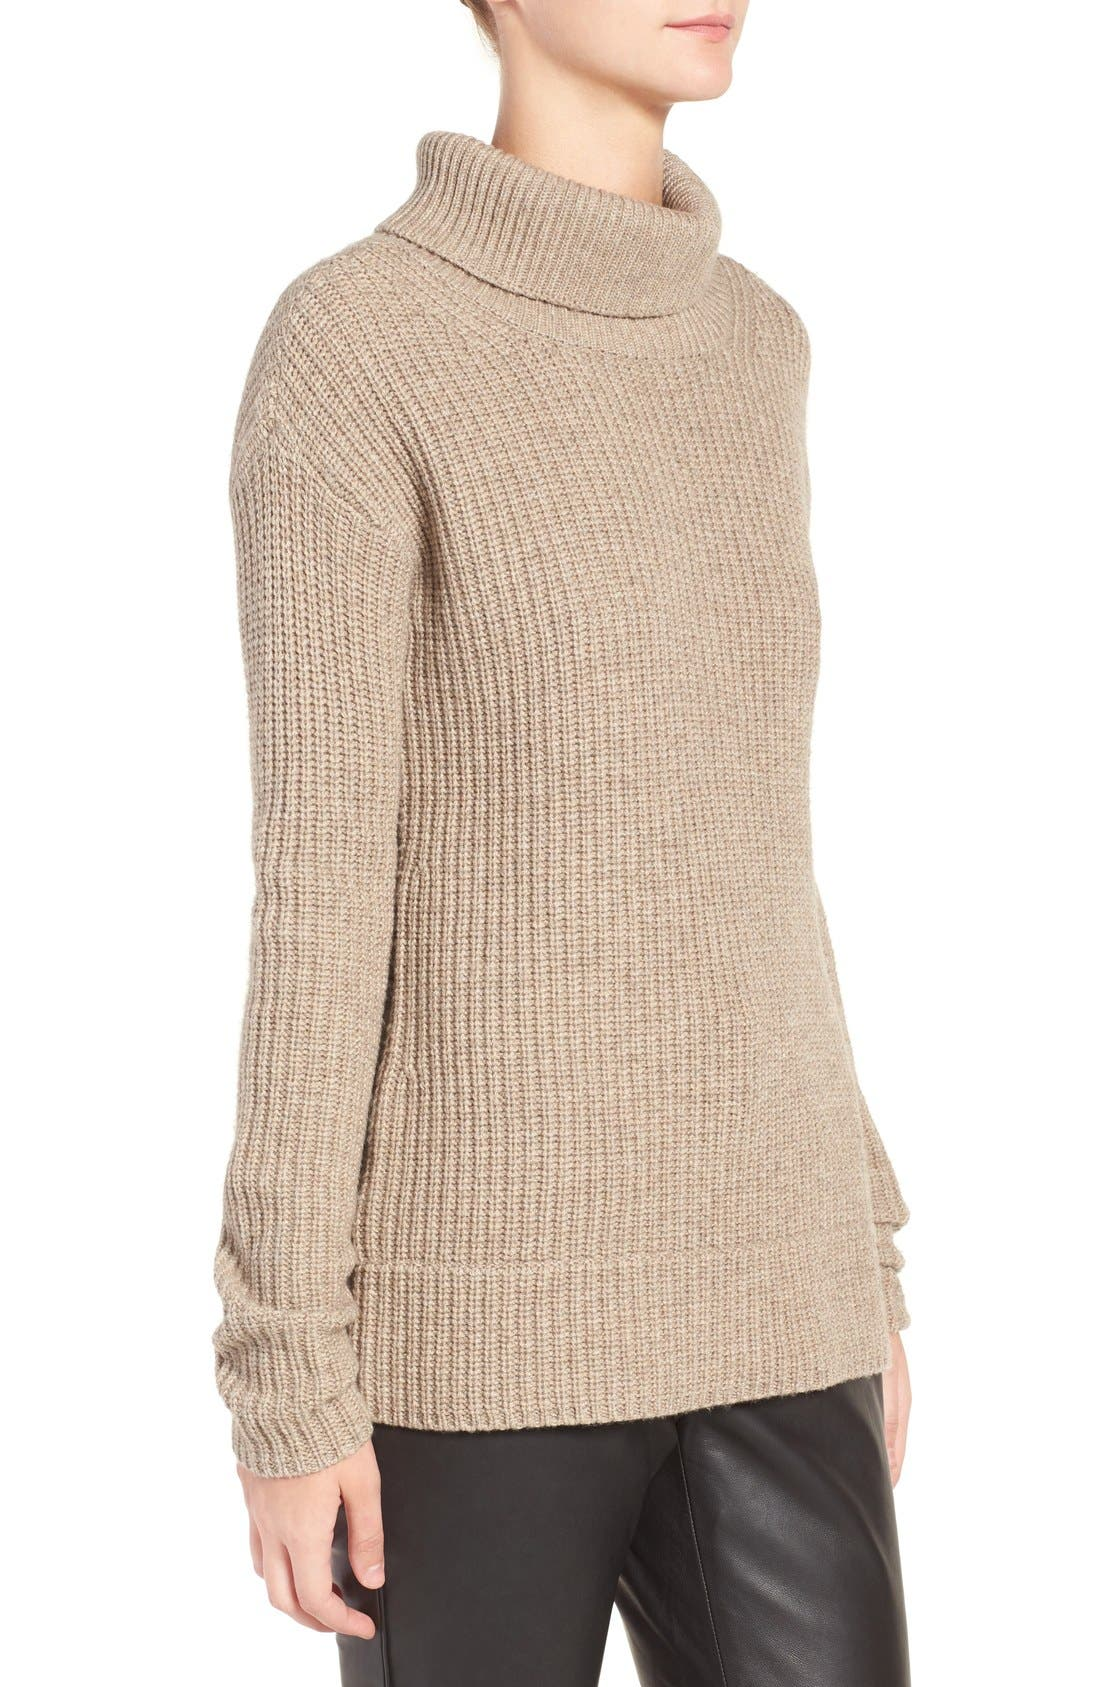 OLIVIA PALERMO + CHELSEA28, Open Back Wool & Cashmere Turtleneck Sweater, Alternate thumbnail 6, color, 235